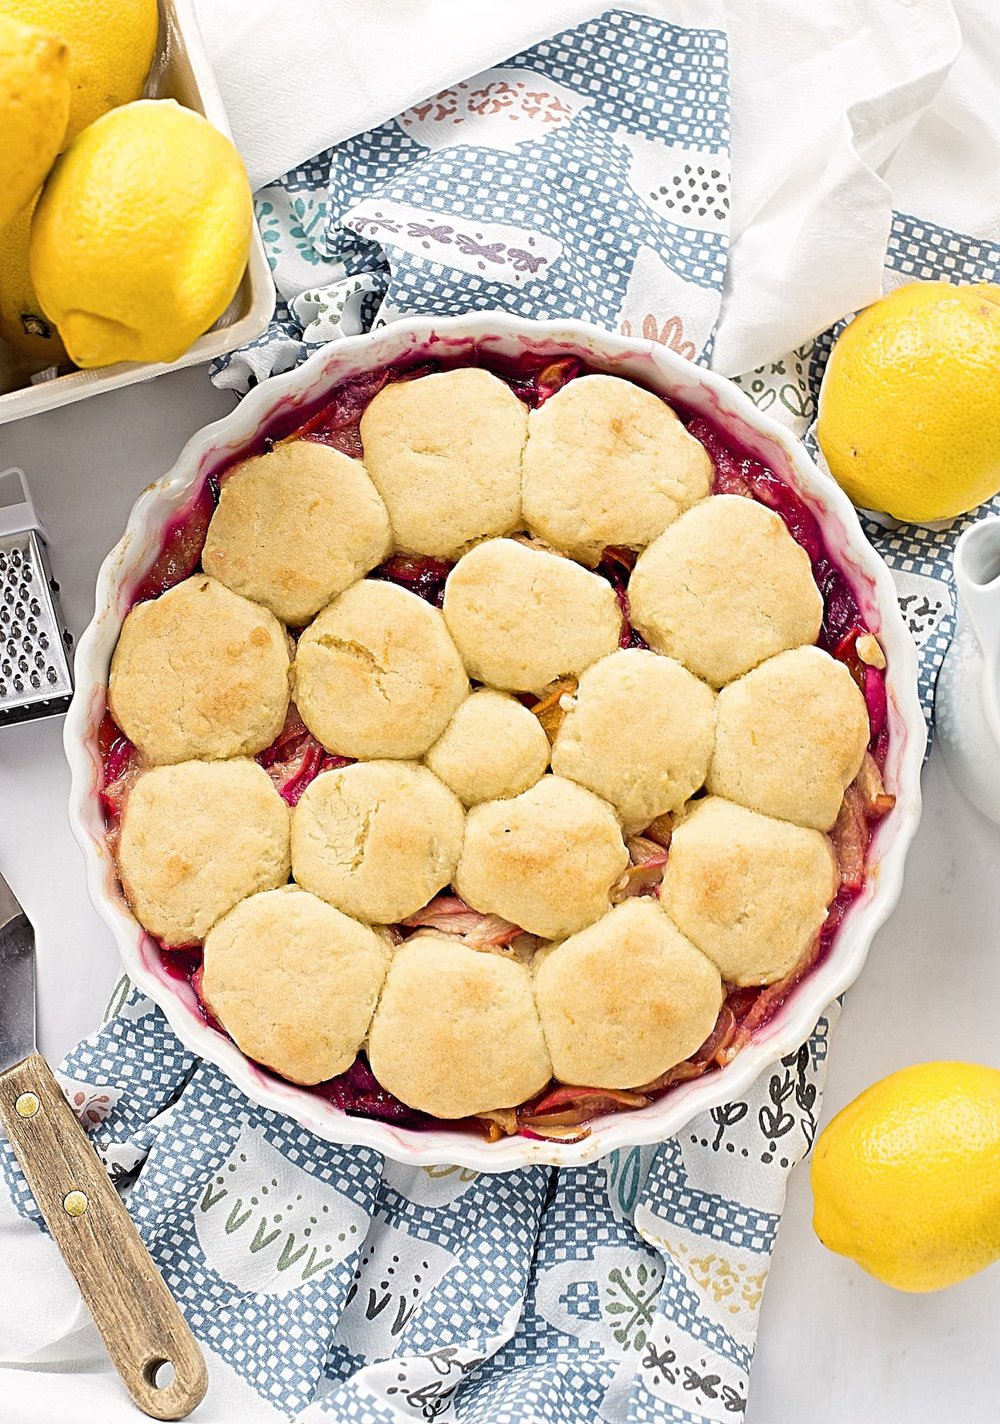 Lemon Cookie Summer Fruit Cobbler: sweet summer fruits topped with soft, gooey, citrusy lemon cookies. Summer in a dish! | TrufflesandTrends.com